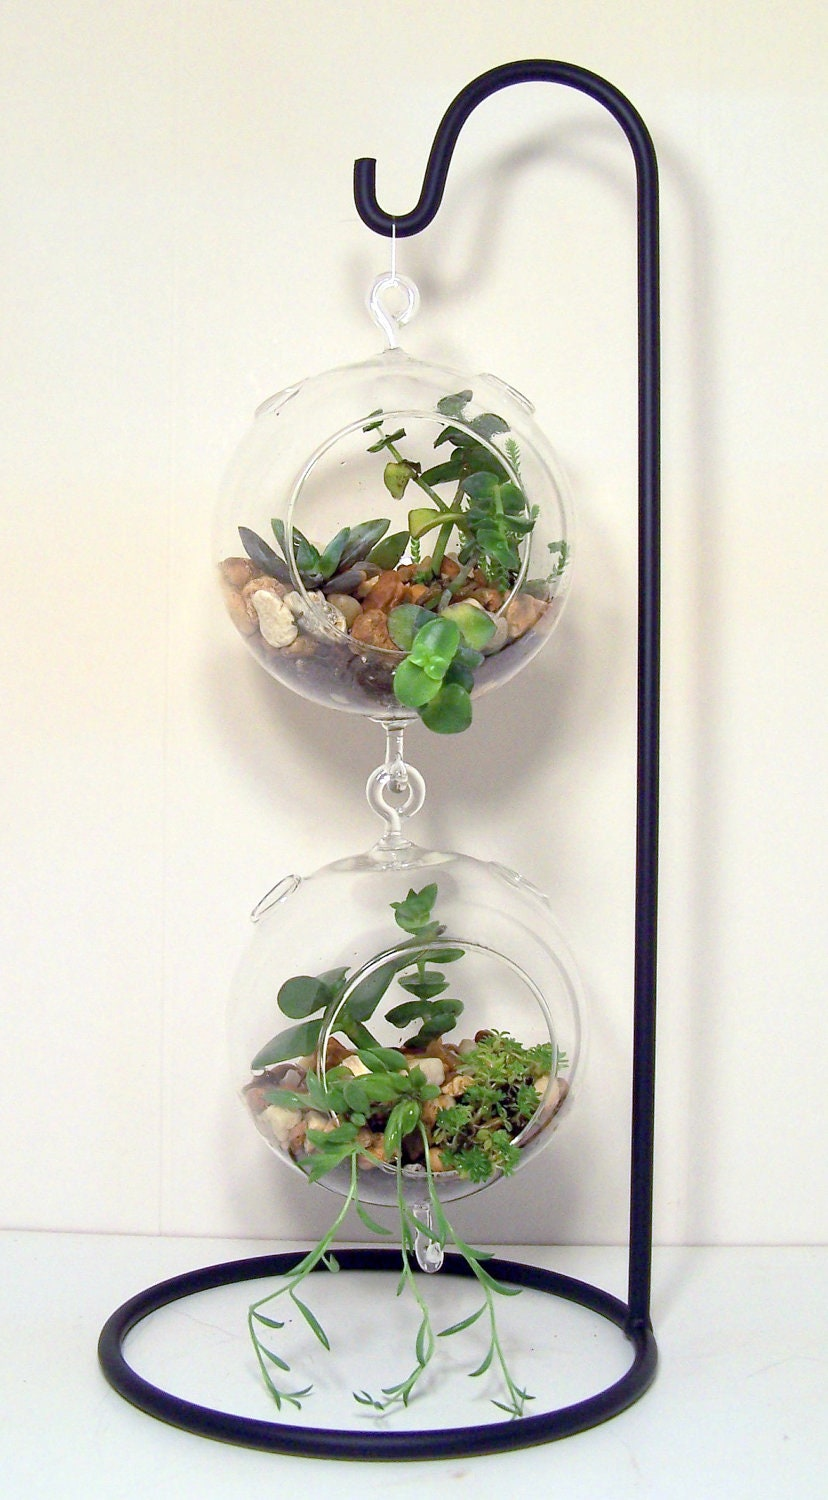 Large Hanging Glass Terrarium Stand Or Ornament Holder Made Of